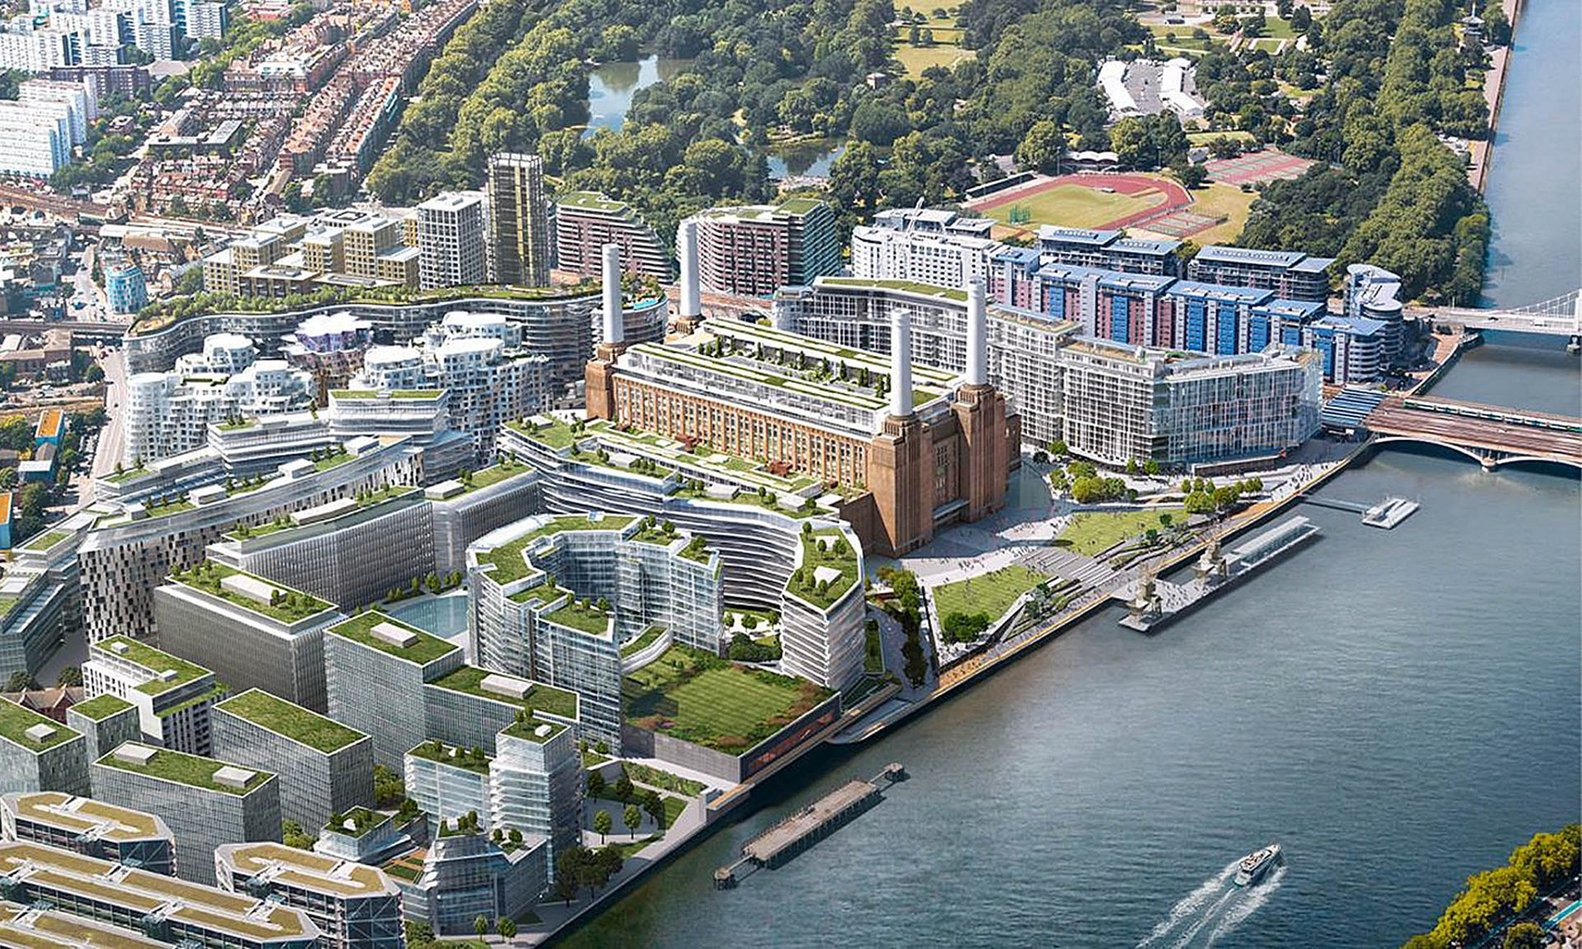 Apple creará nuevo campus de Londres en la antigua central eléctrica Battersea,Visualization of the Battersea development, with the Grade II* Listed former power station at its heart. Image Cortesía de Battersea Power Station Development